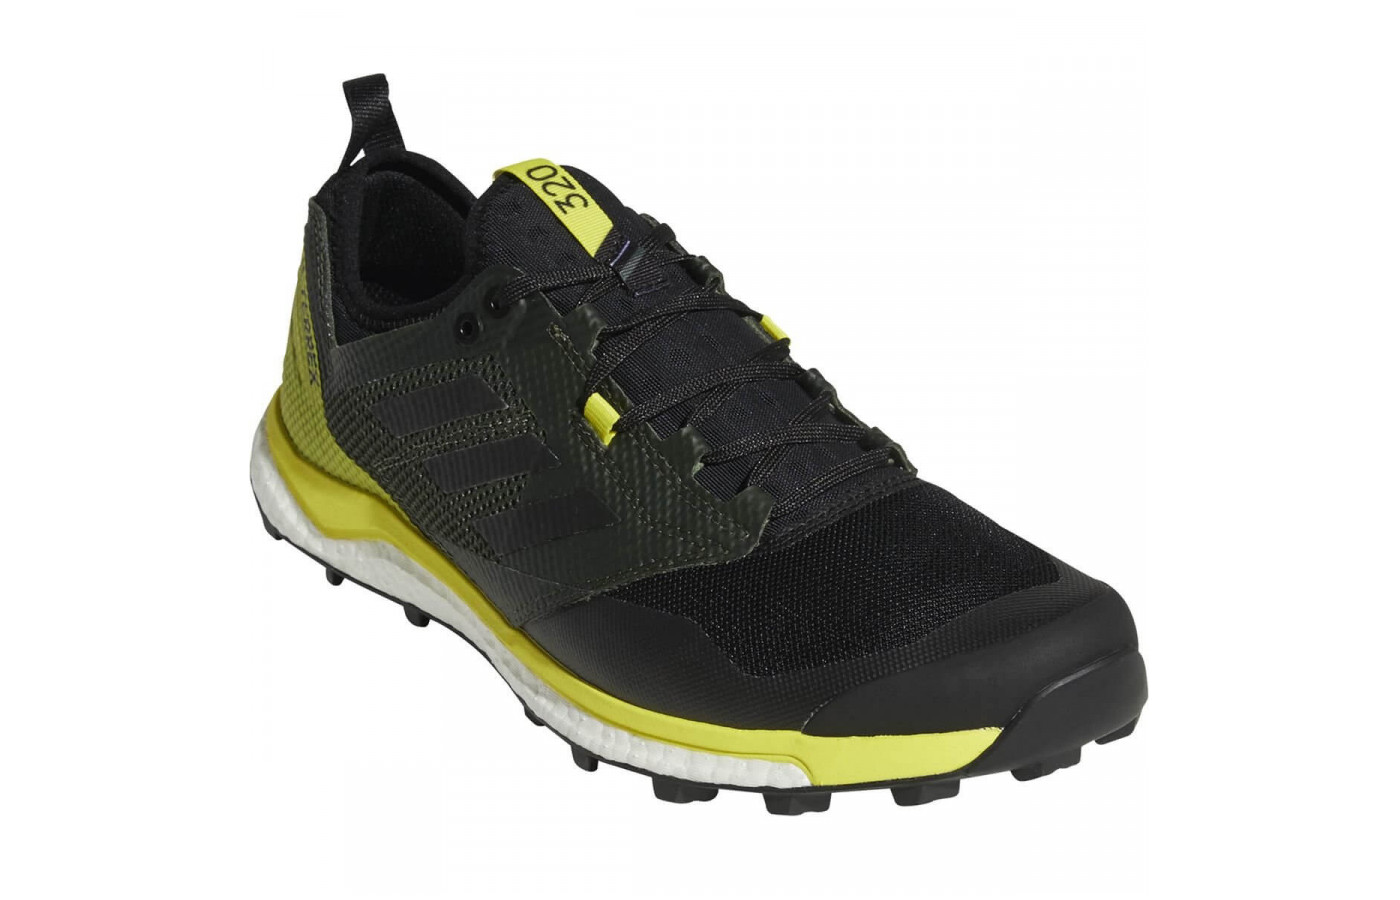 A breathable mesh upper enhances the Terrex Agravic XT's level of comfort.